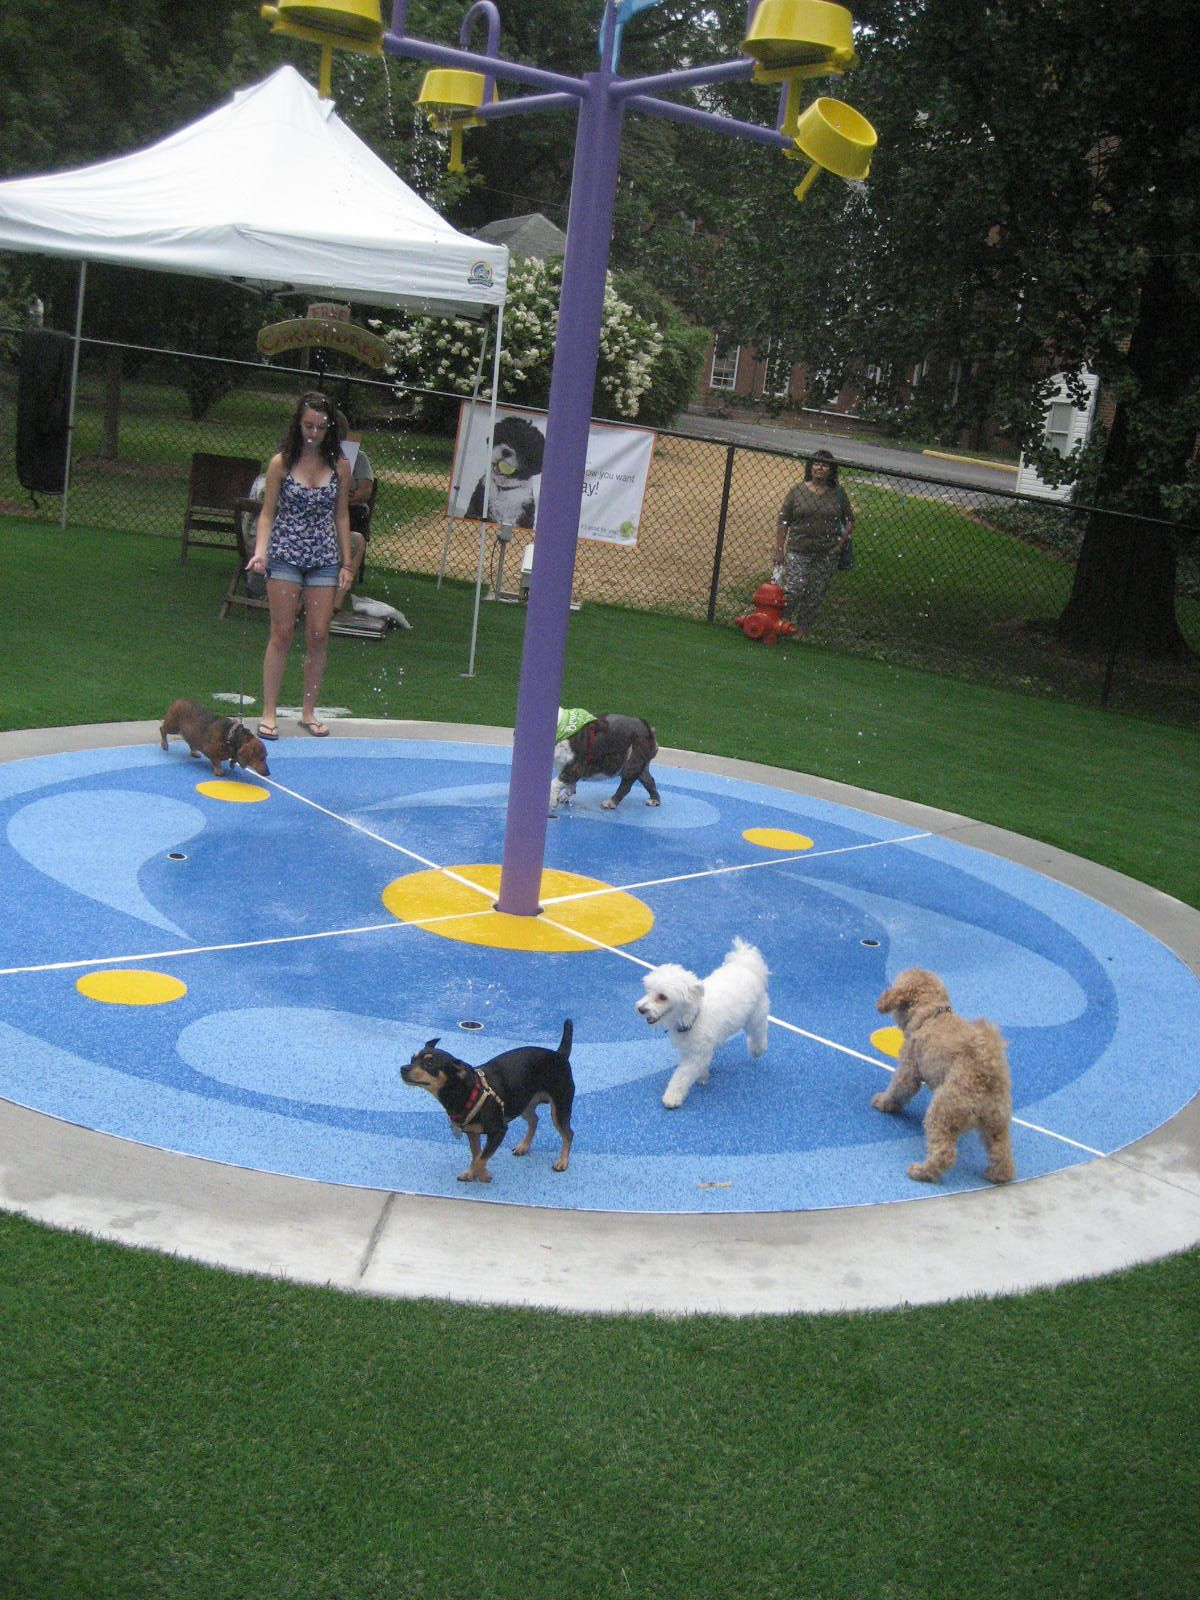 Pin By H2o Fido On Dog Spray Parks Dog Water Parks Splash Pads For Dogs By H2o Fido Dog Park Equipment Dog